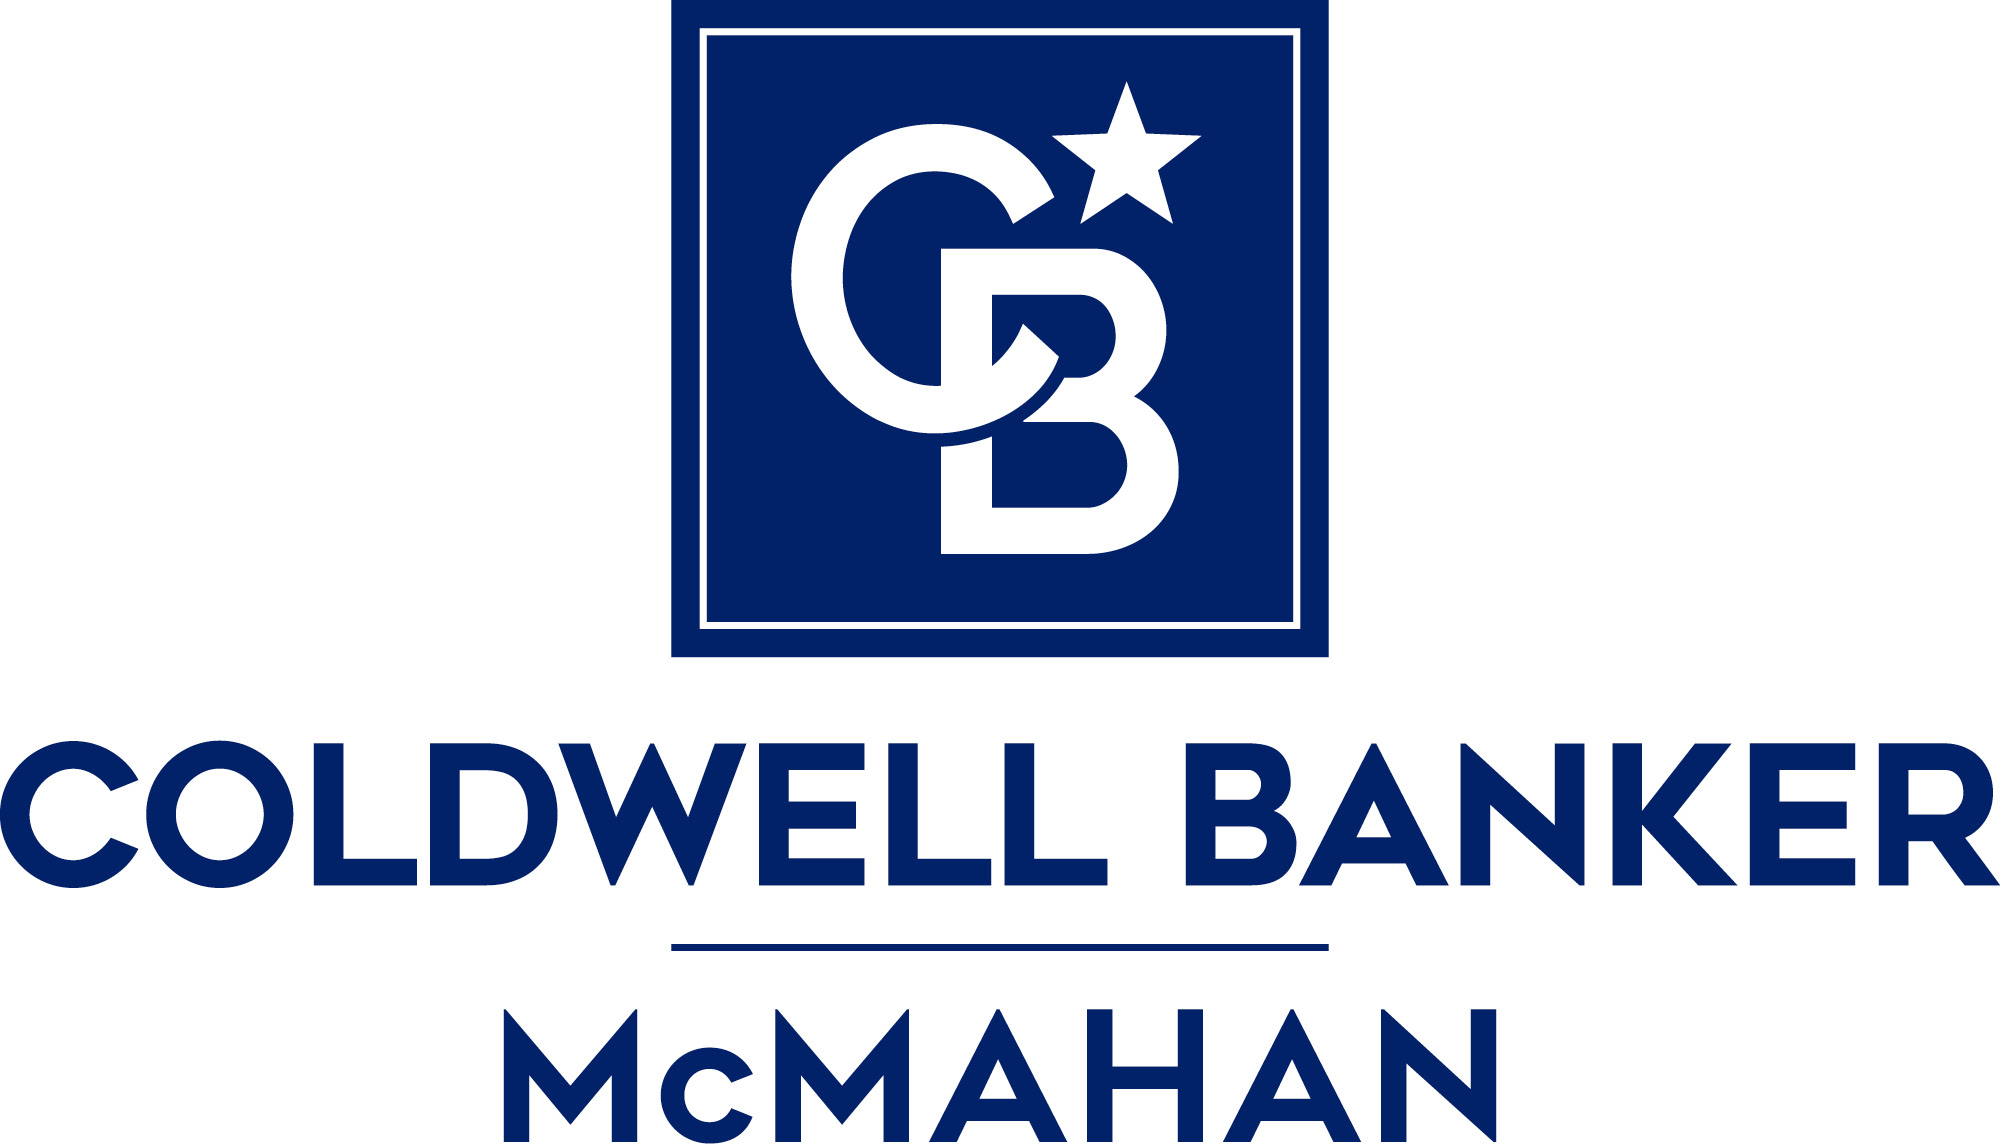 Kathryn Cheuvront - Coldwell Banker McMahan Logo